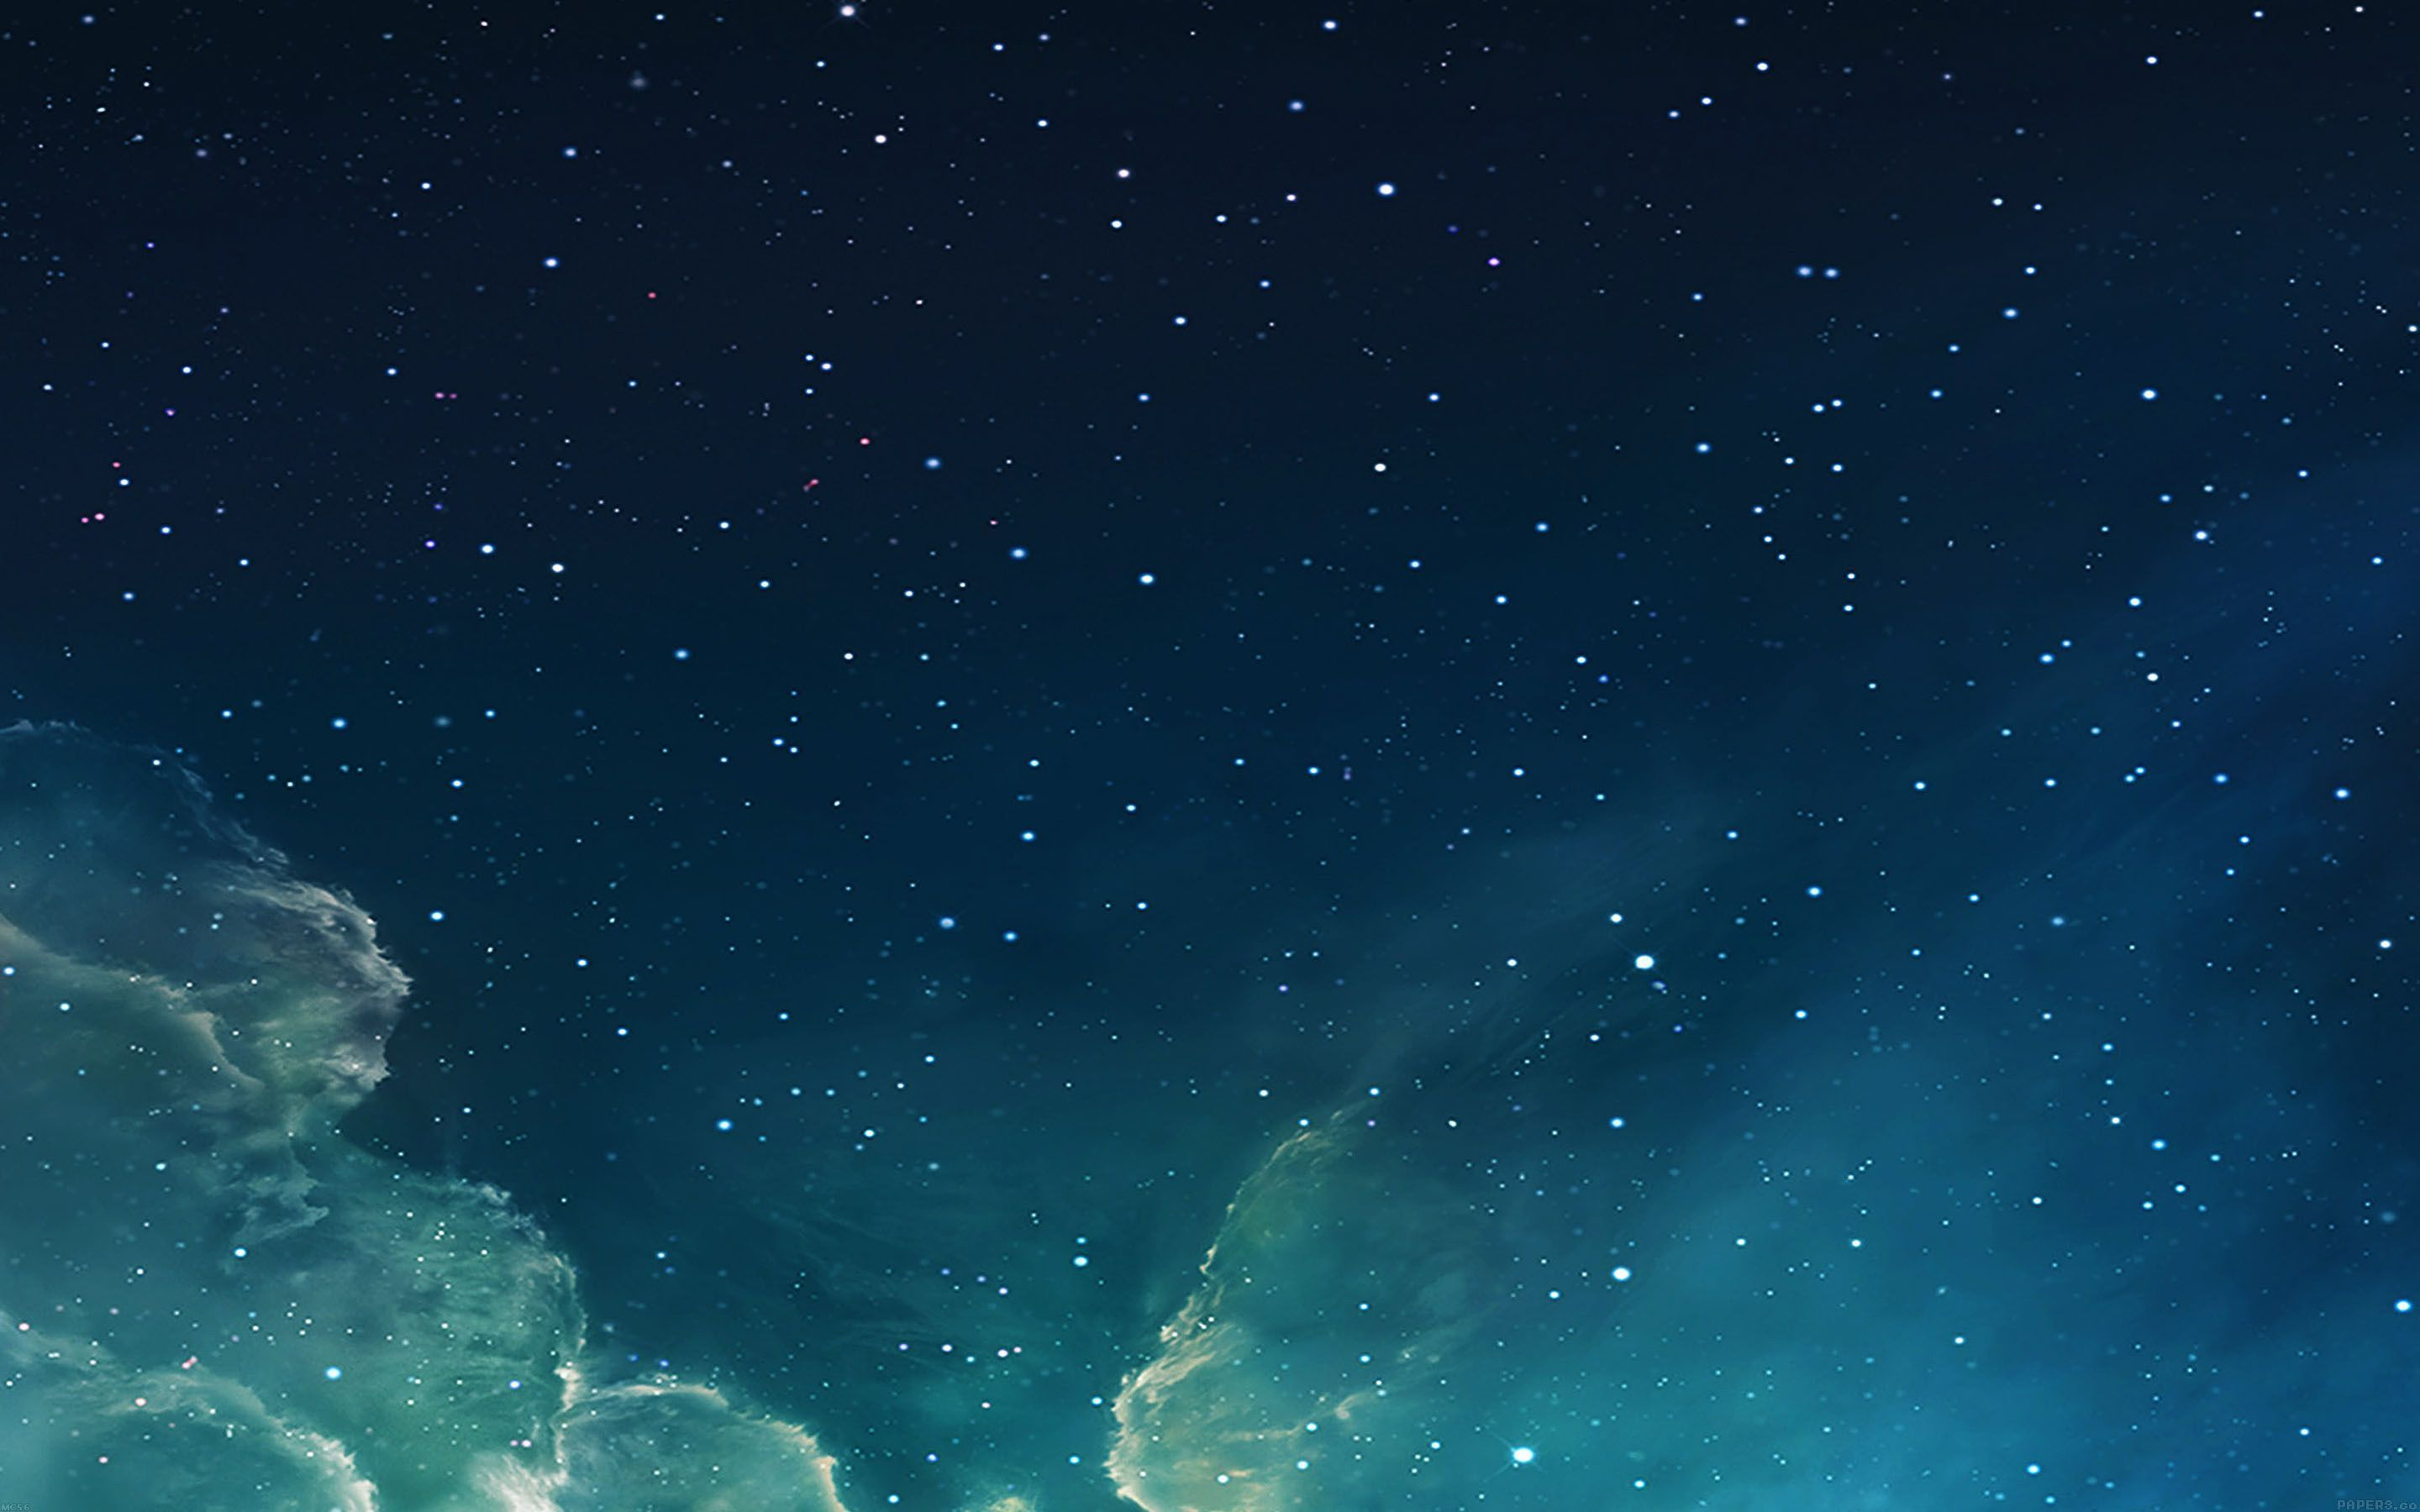 4k Star Wallpapers Top Free 4k Star Backgrounds